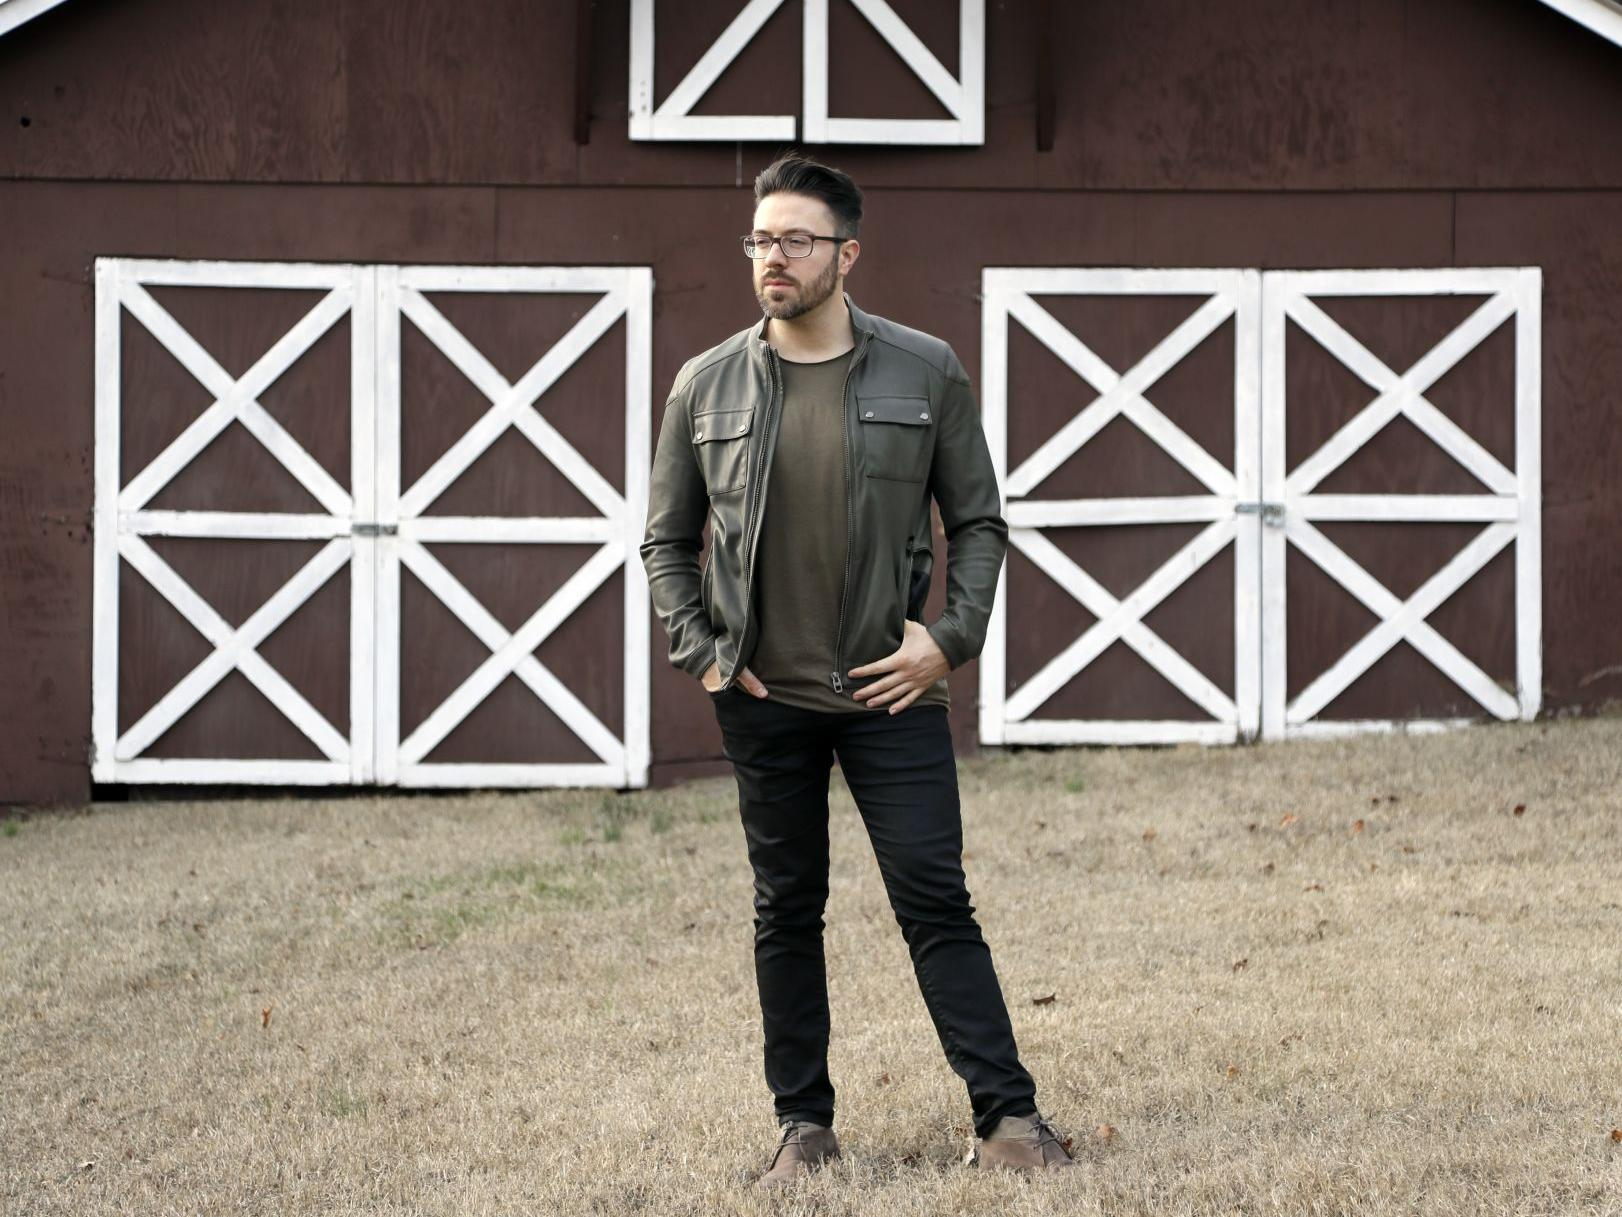 Concerts Colorado Springs 2020 Christmas Christian singers Danny Gokey and Natalie Grant bring Christmas